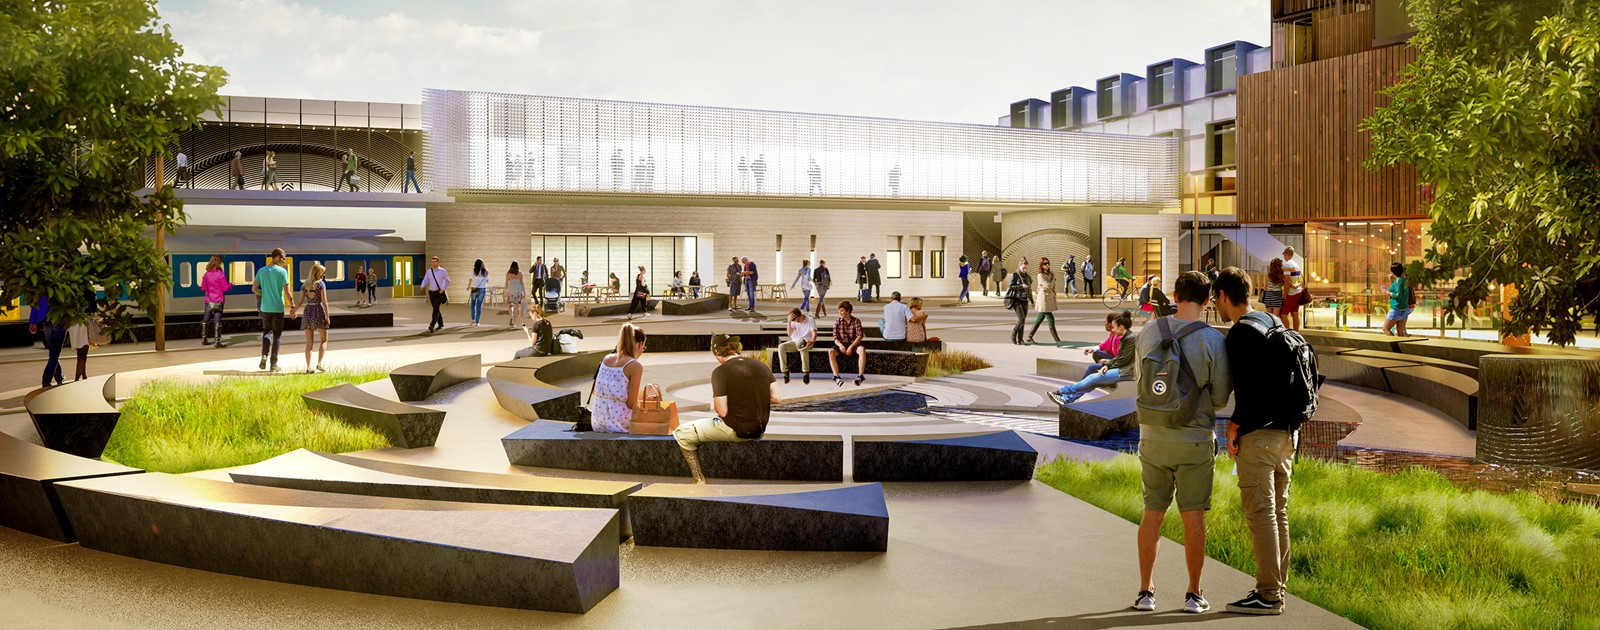 Artist's impression of the public seating area outside the new train station.